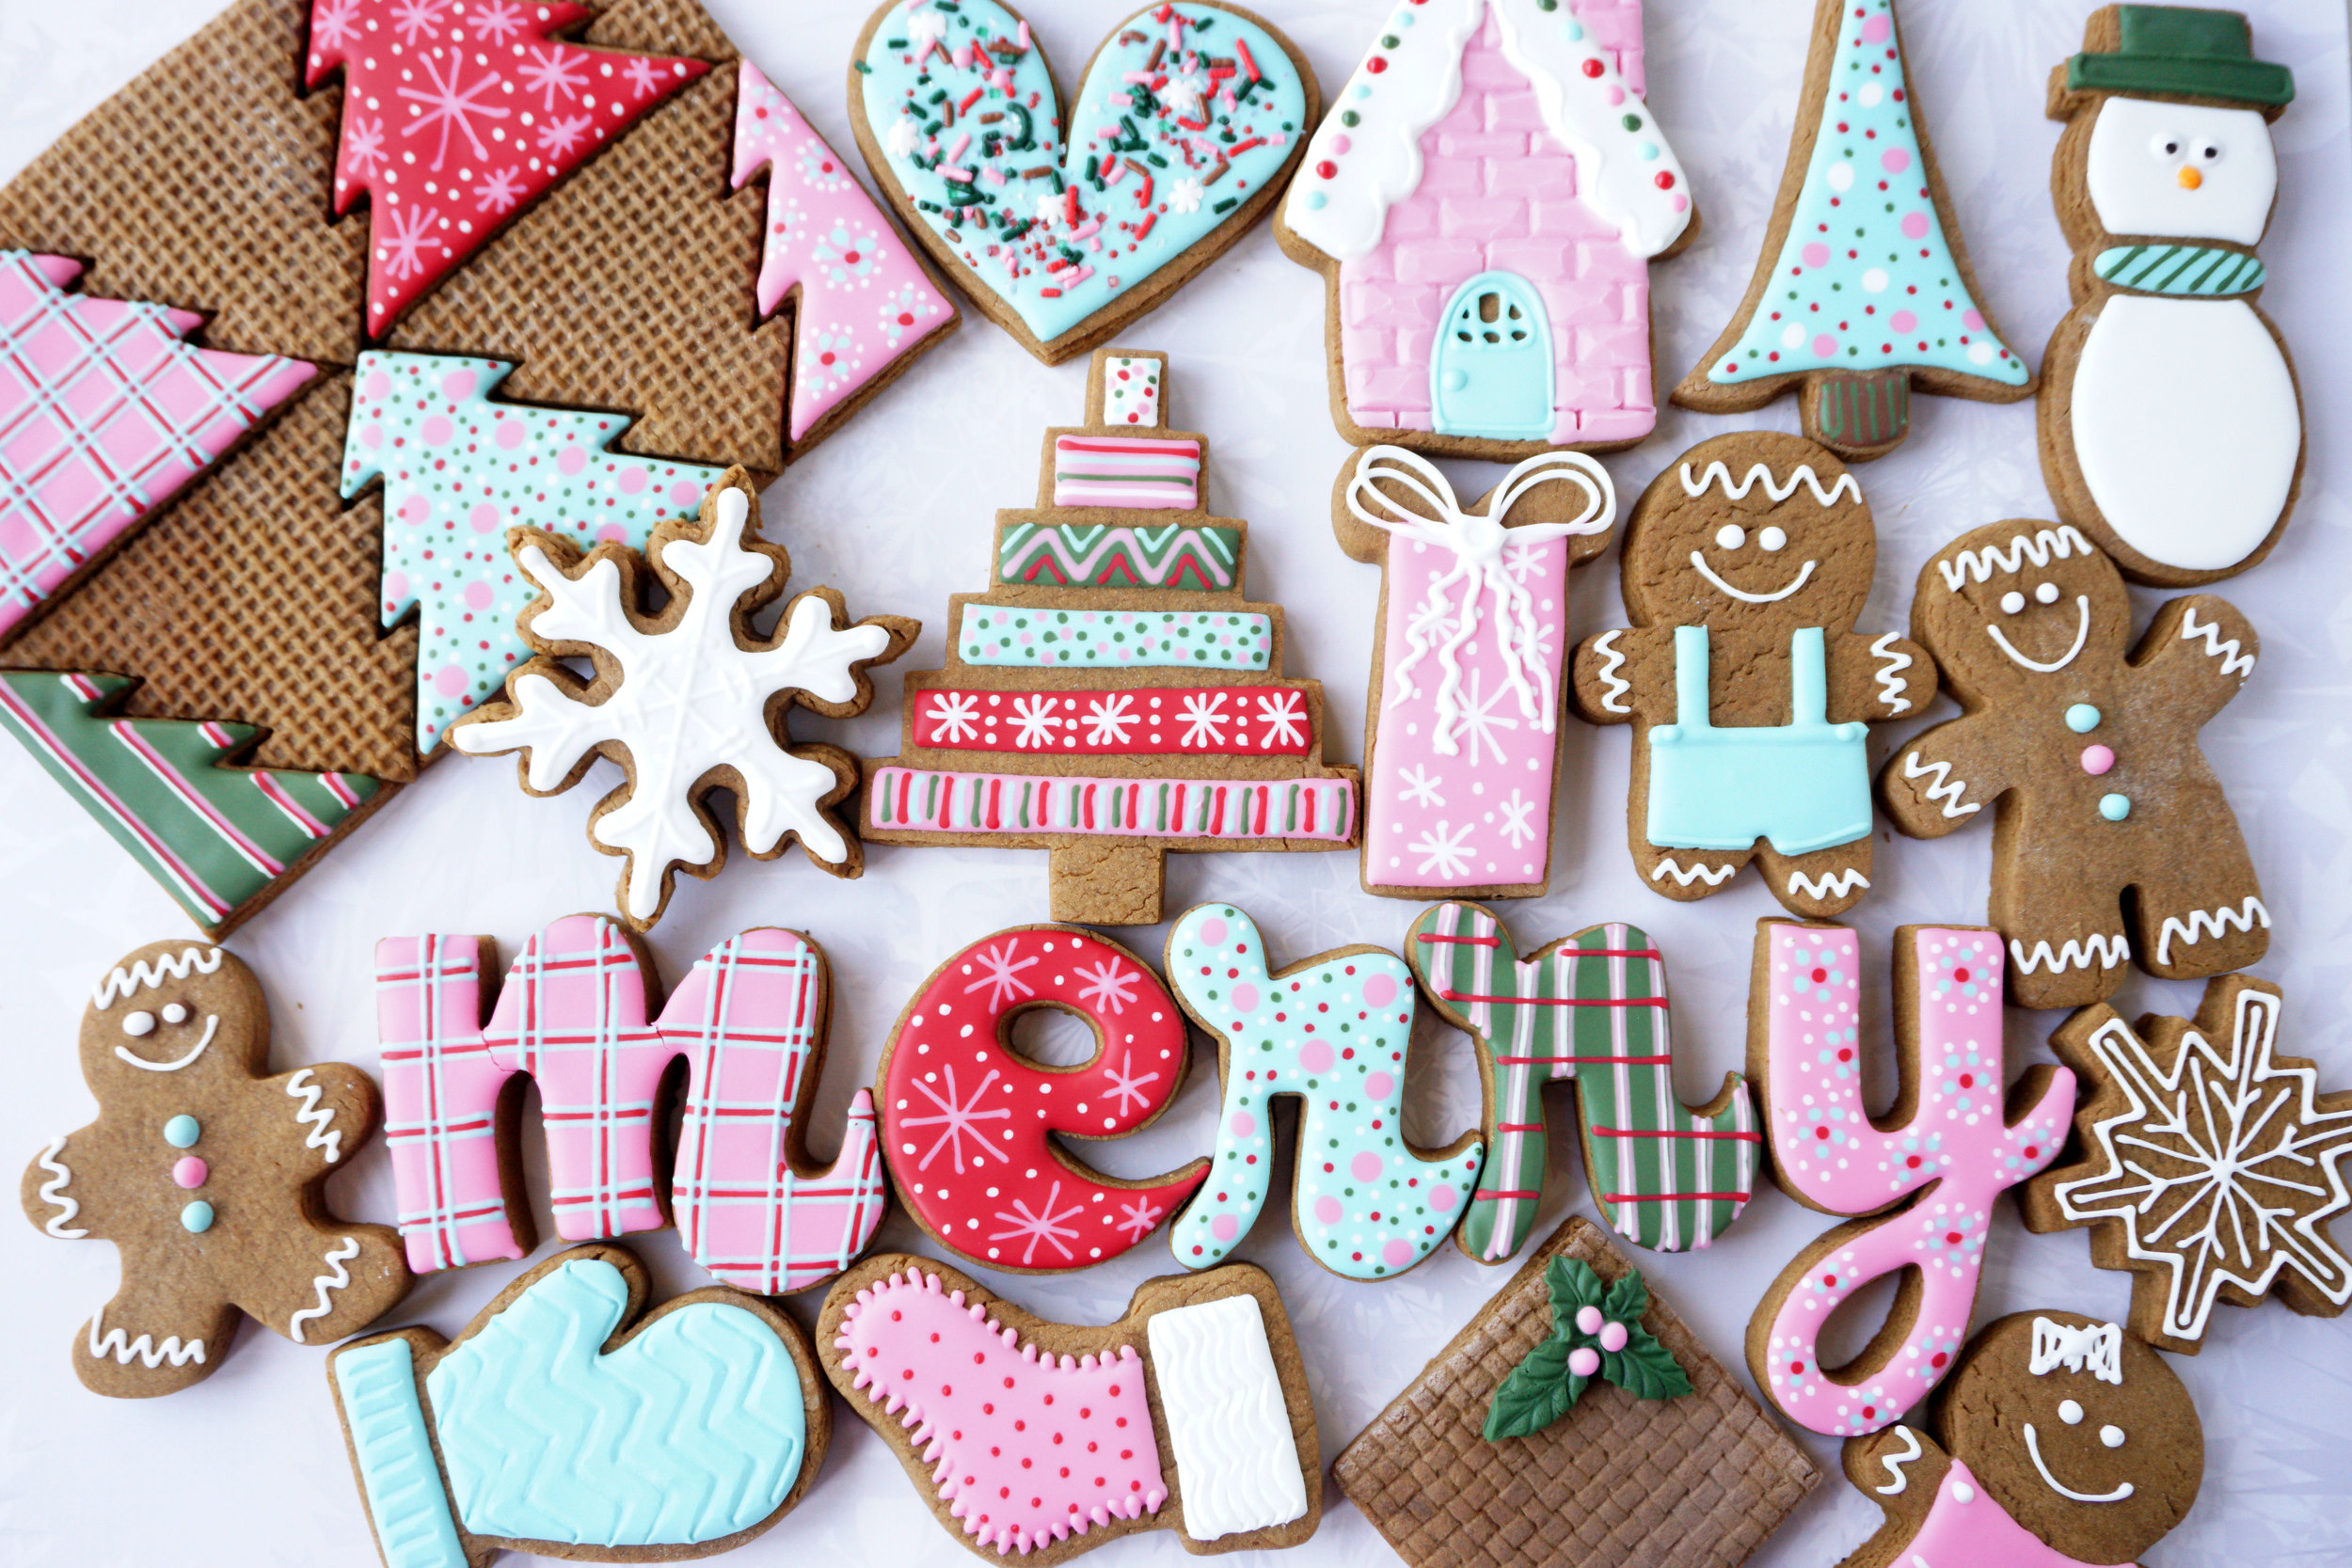 Gingerbread 2017 Decorated Cookie Collection